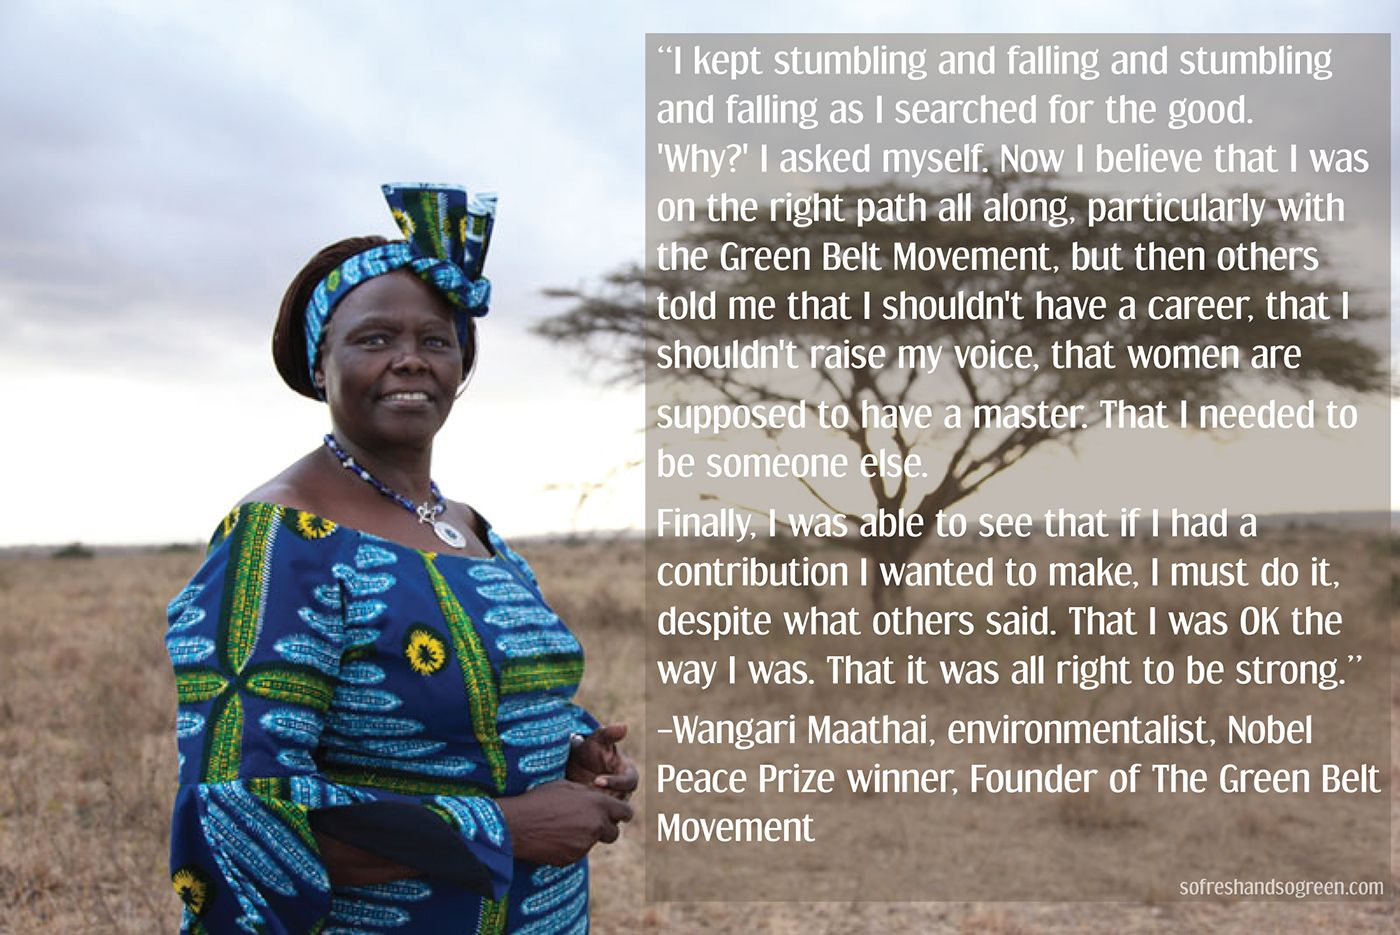 Wangari Maathai On Making A Difference In The World quote